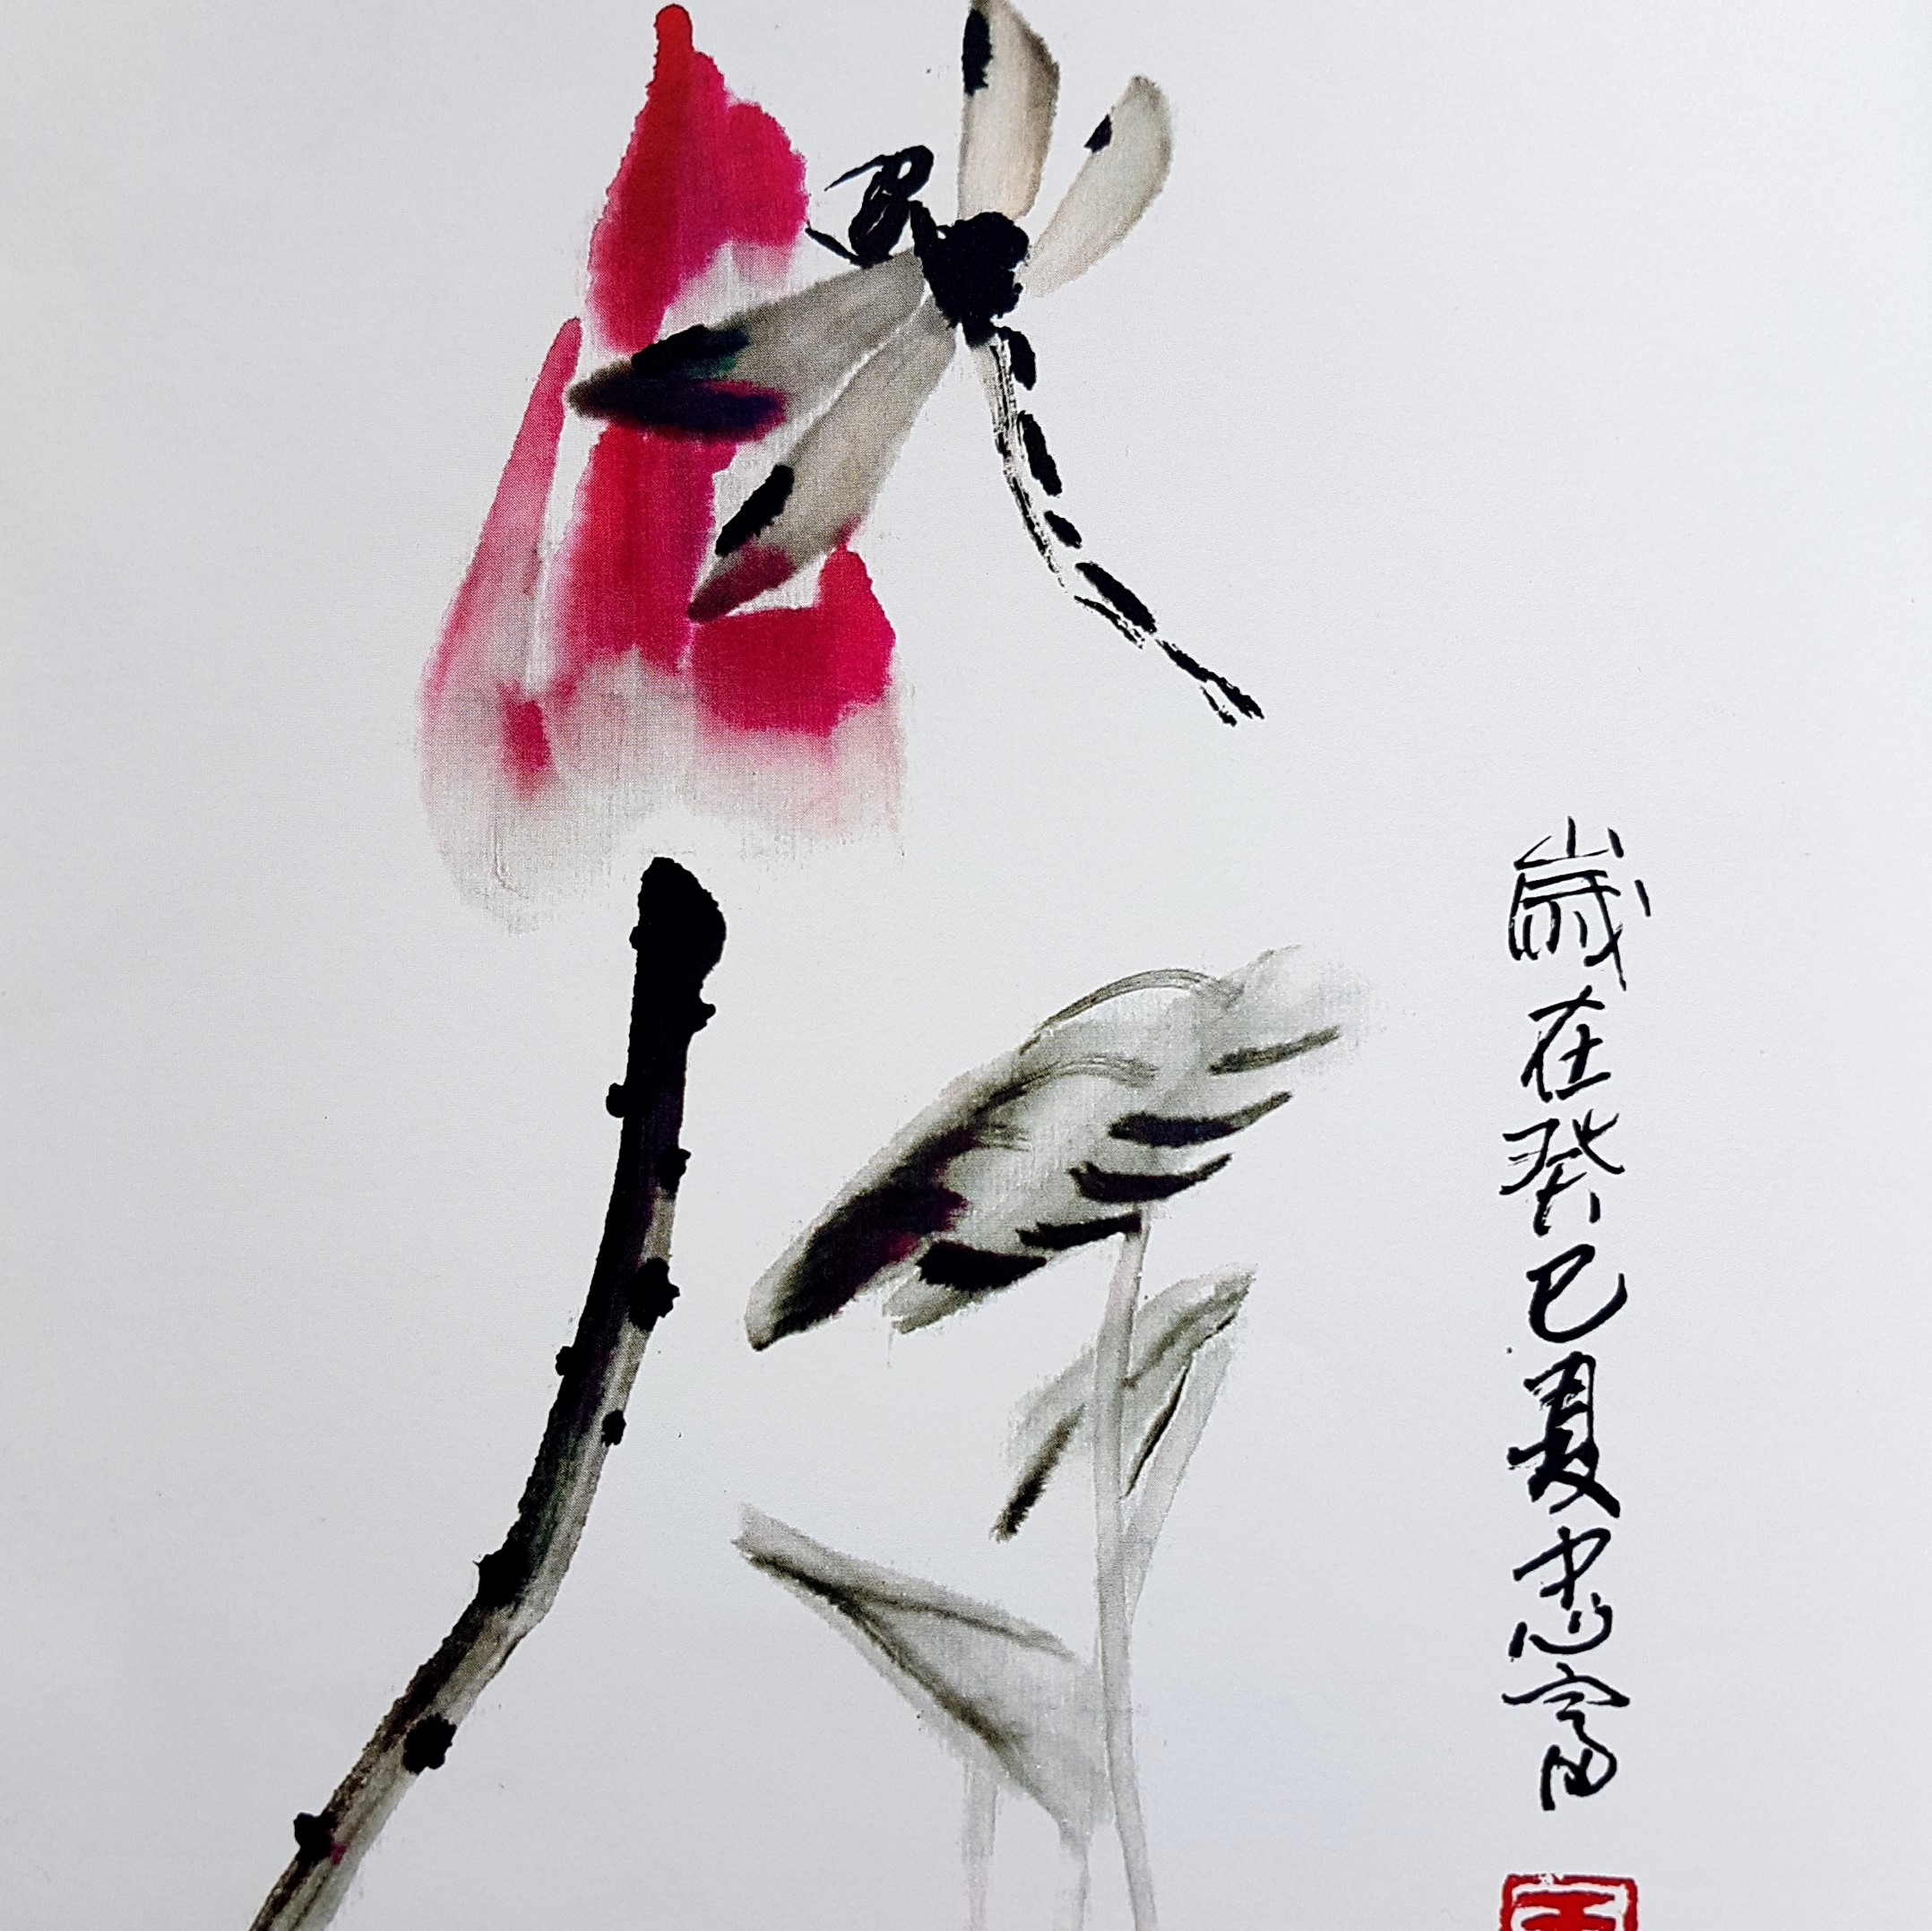 Chinese painting with ink on rice paper - advanced - creative